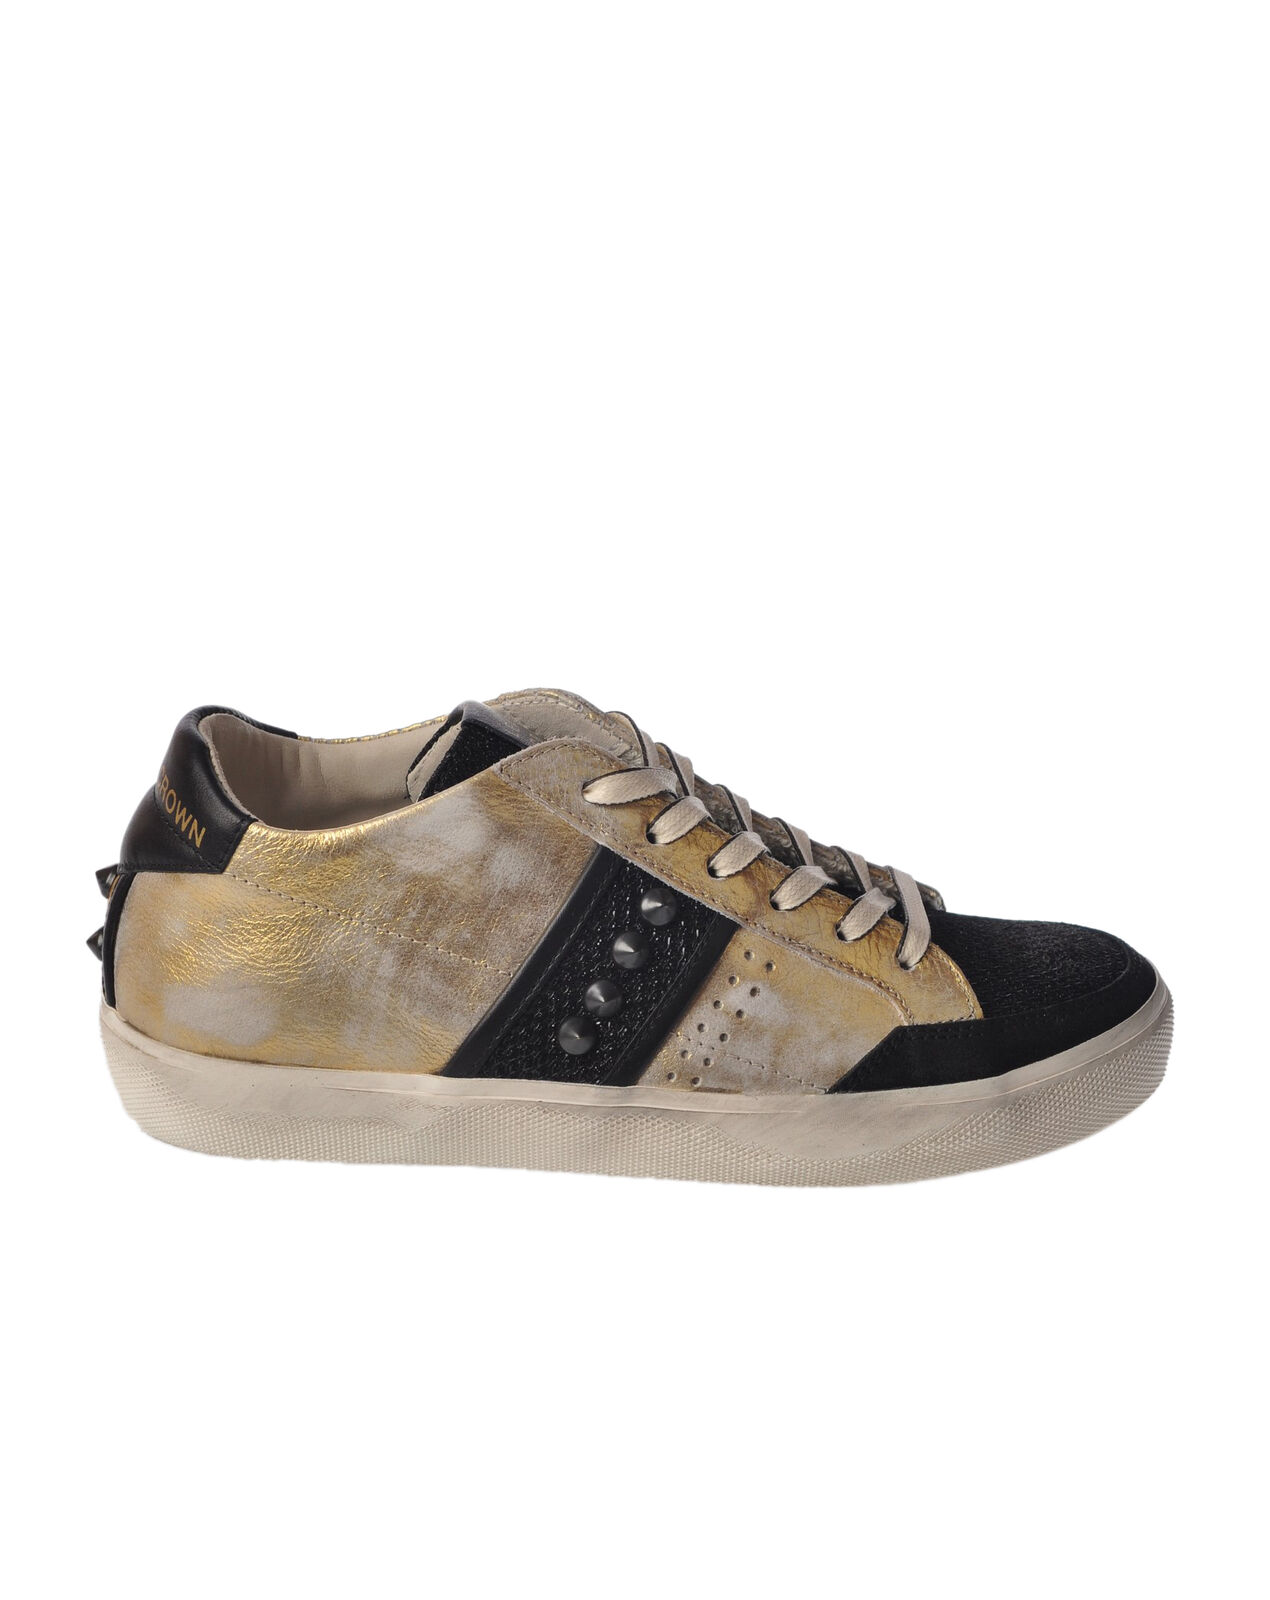 Leather Crown - shoes-Sneakers low - Woman - gold - 4993414H184358